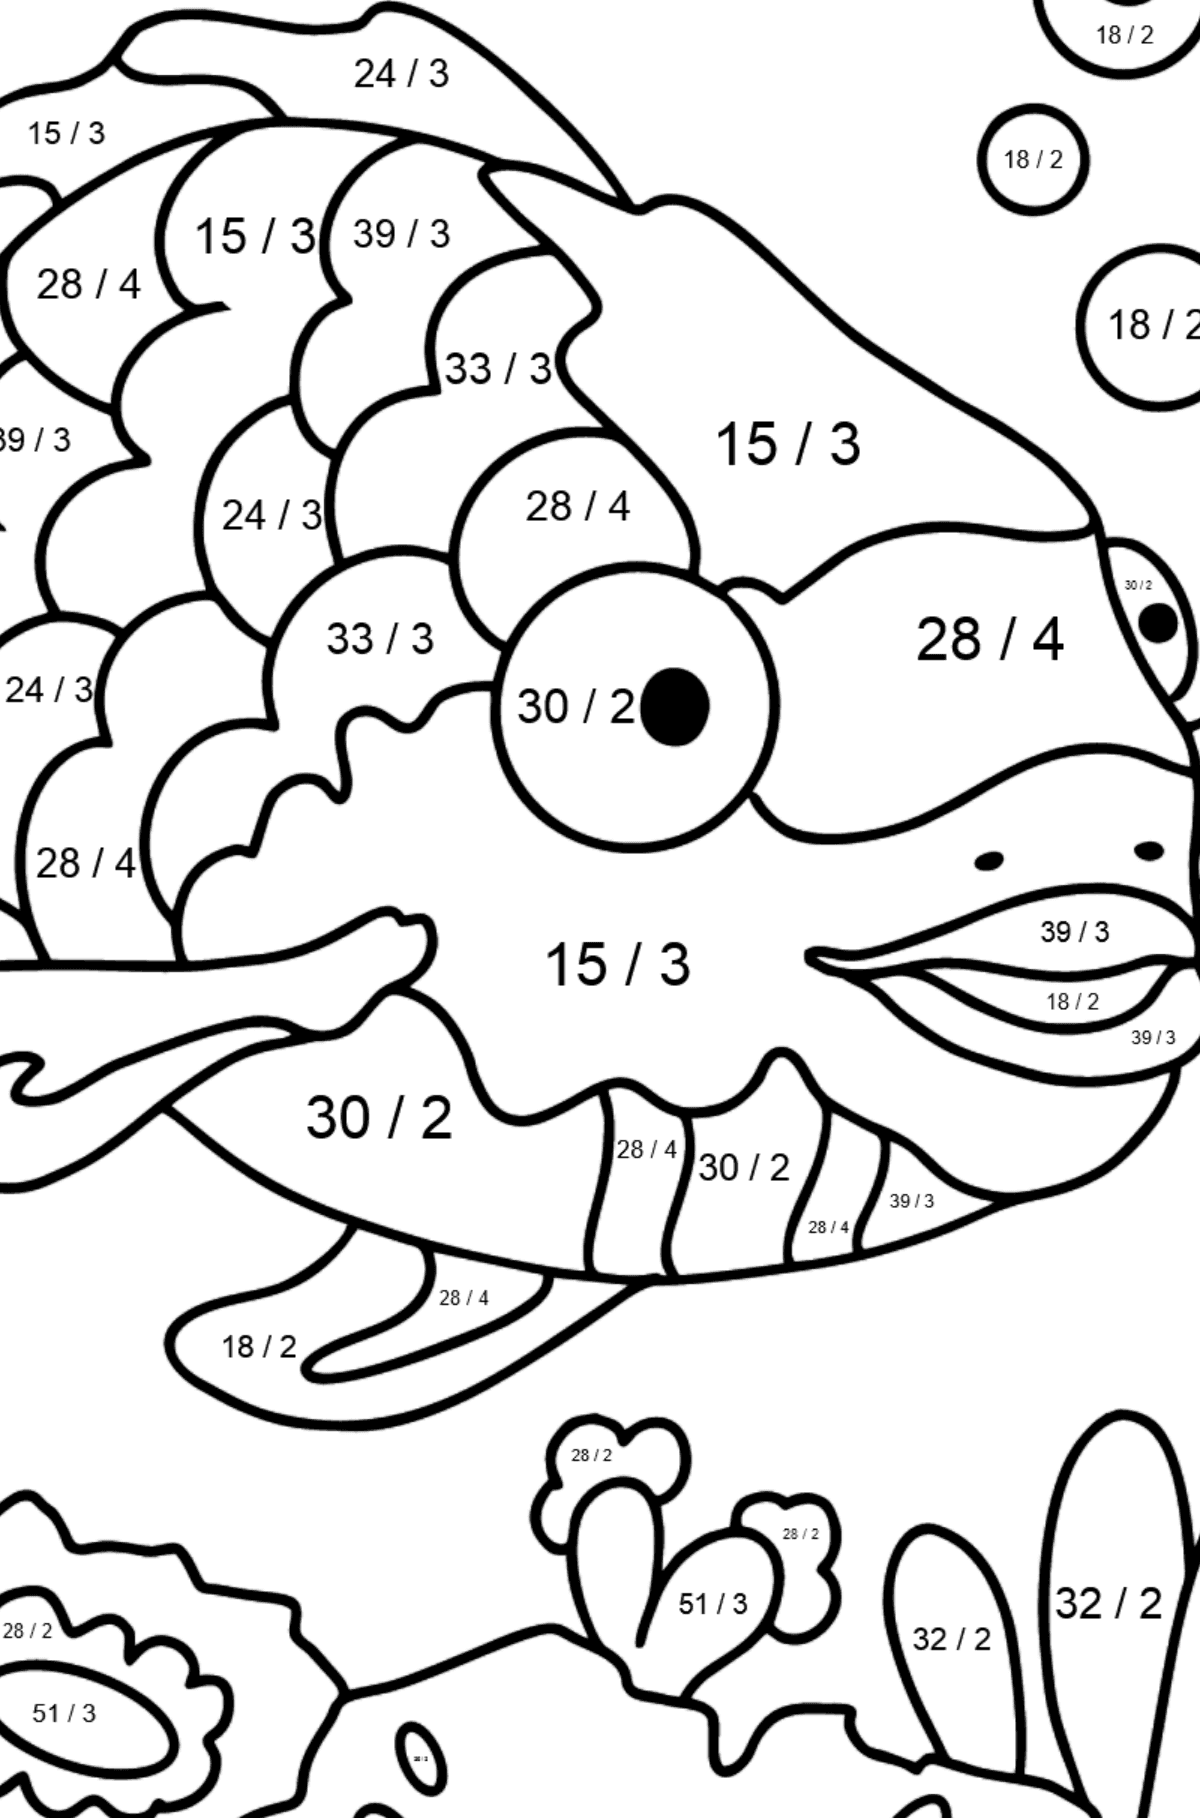 Coloring Page - An Exotic or Rainbow fish - Math Coloring - Division for Kids